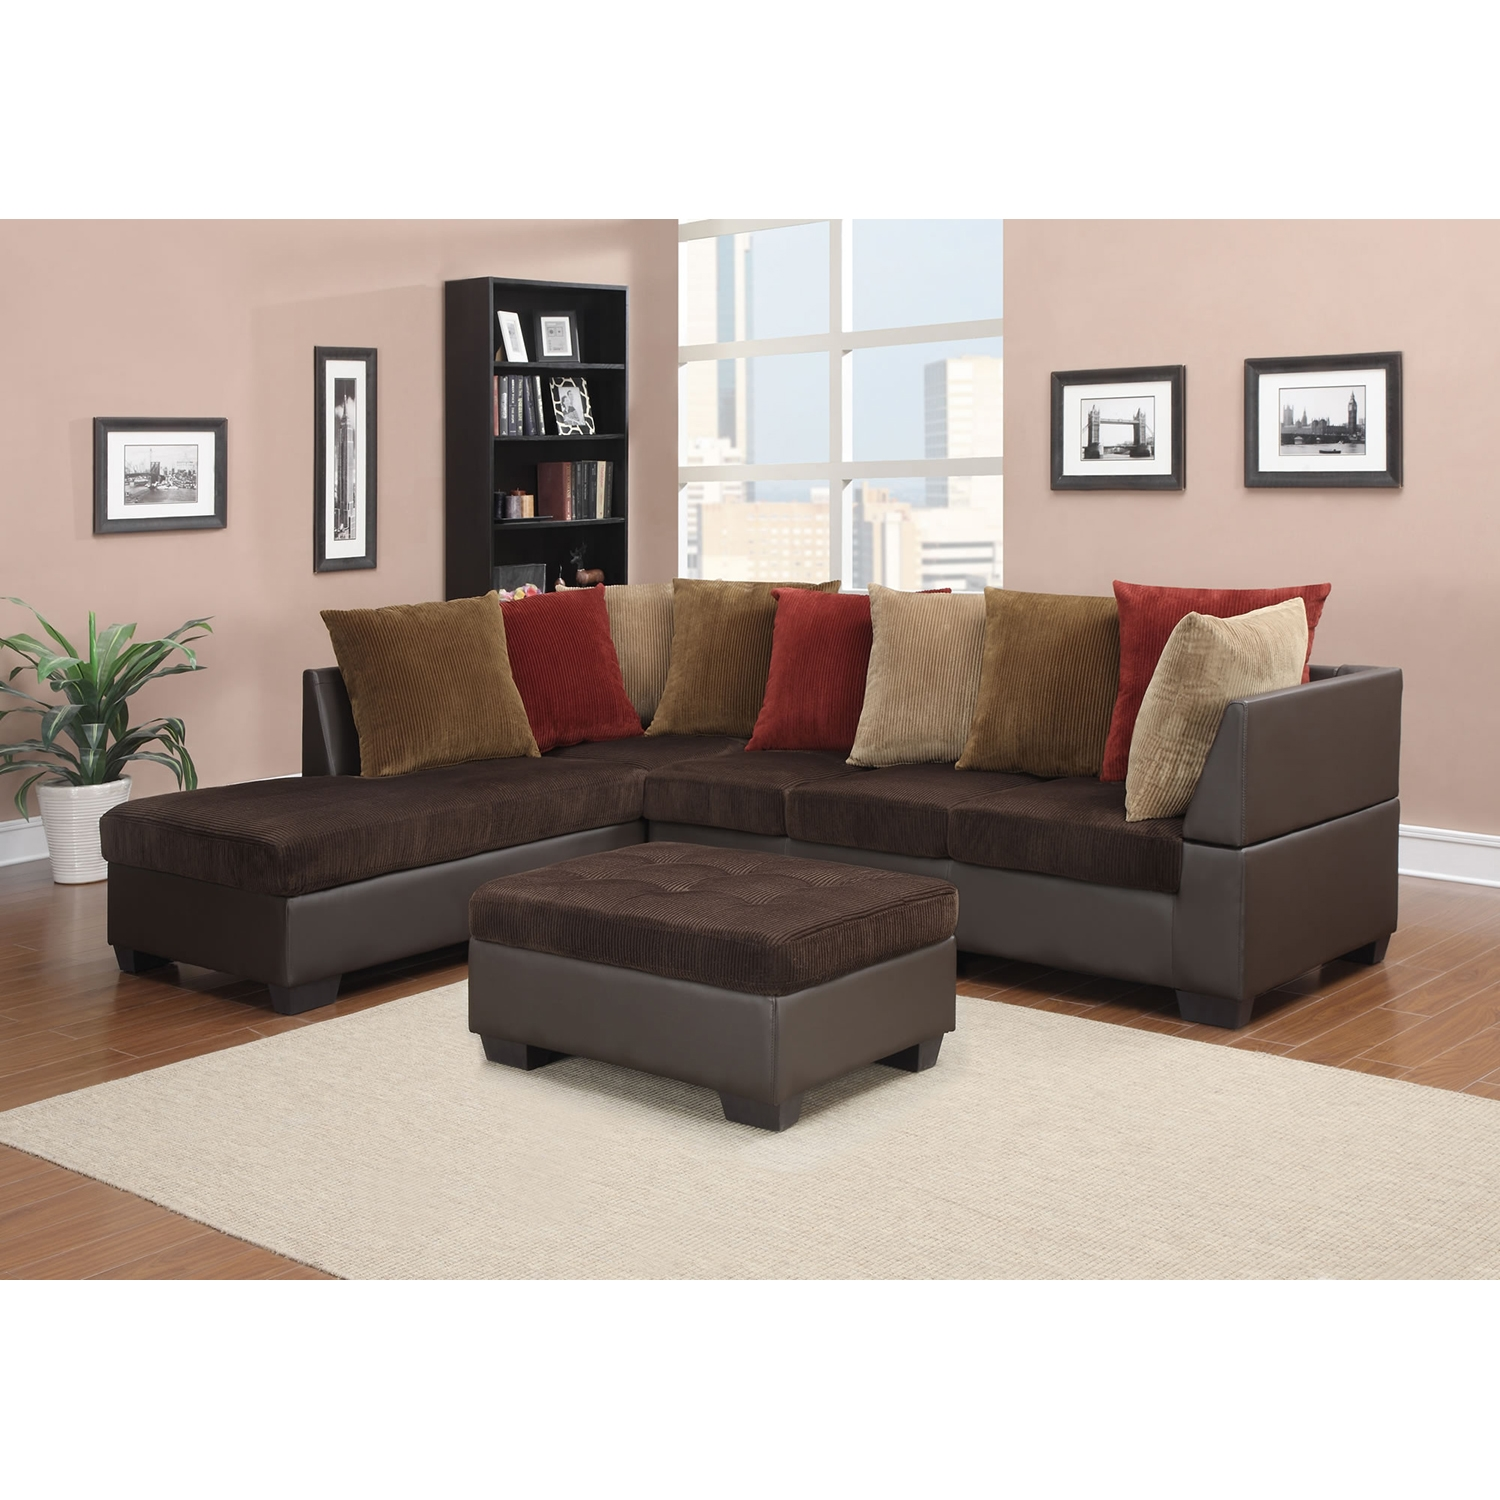 Jorge Sectional Sofa With Ottoman Chocolate Corduroy